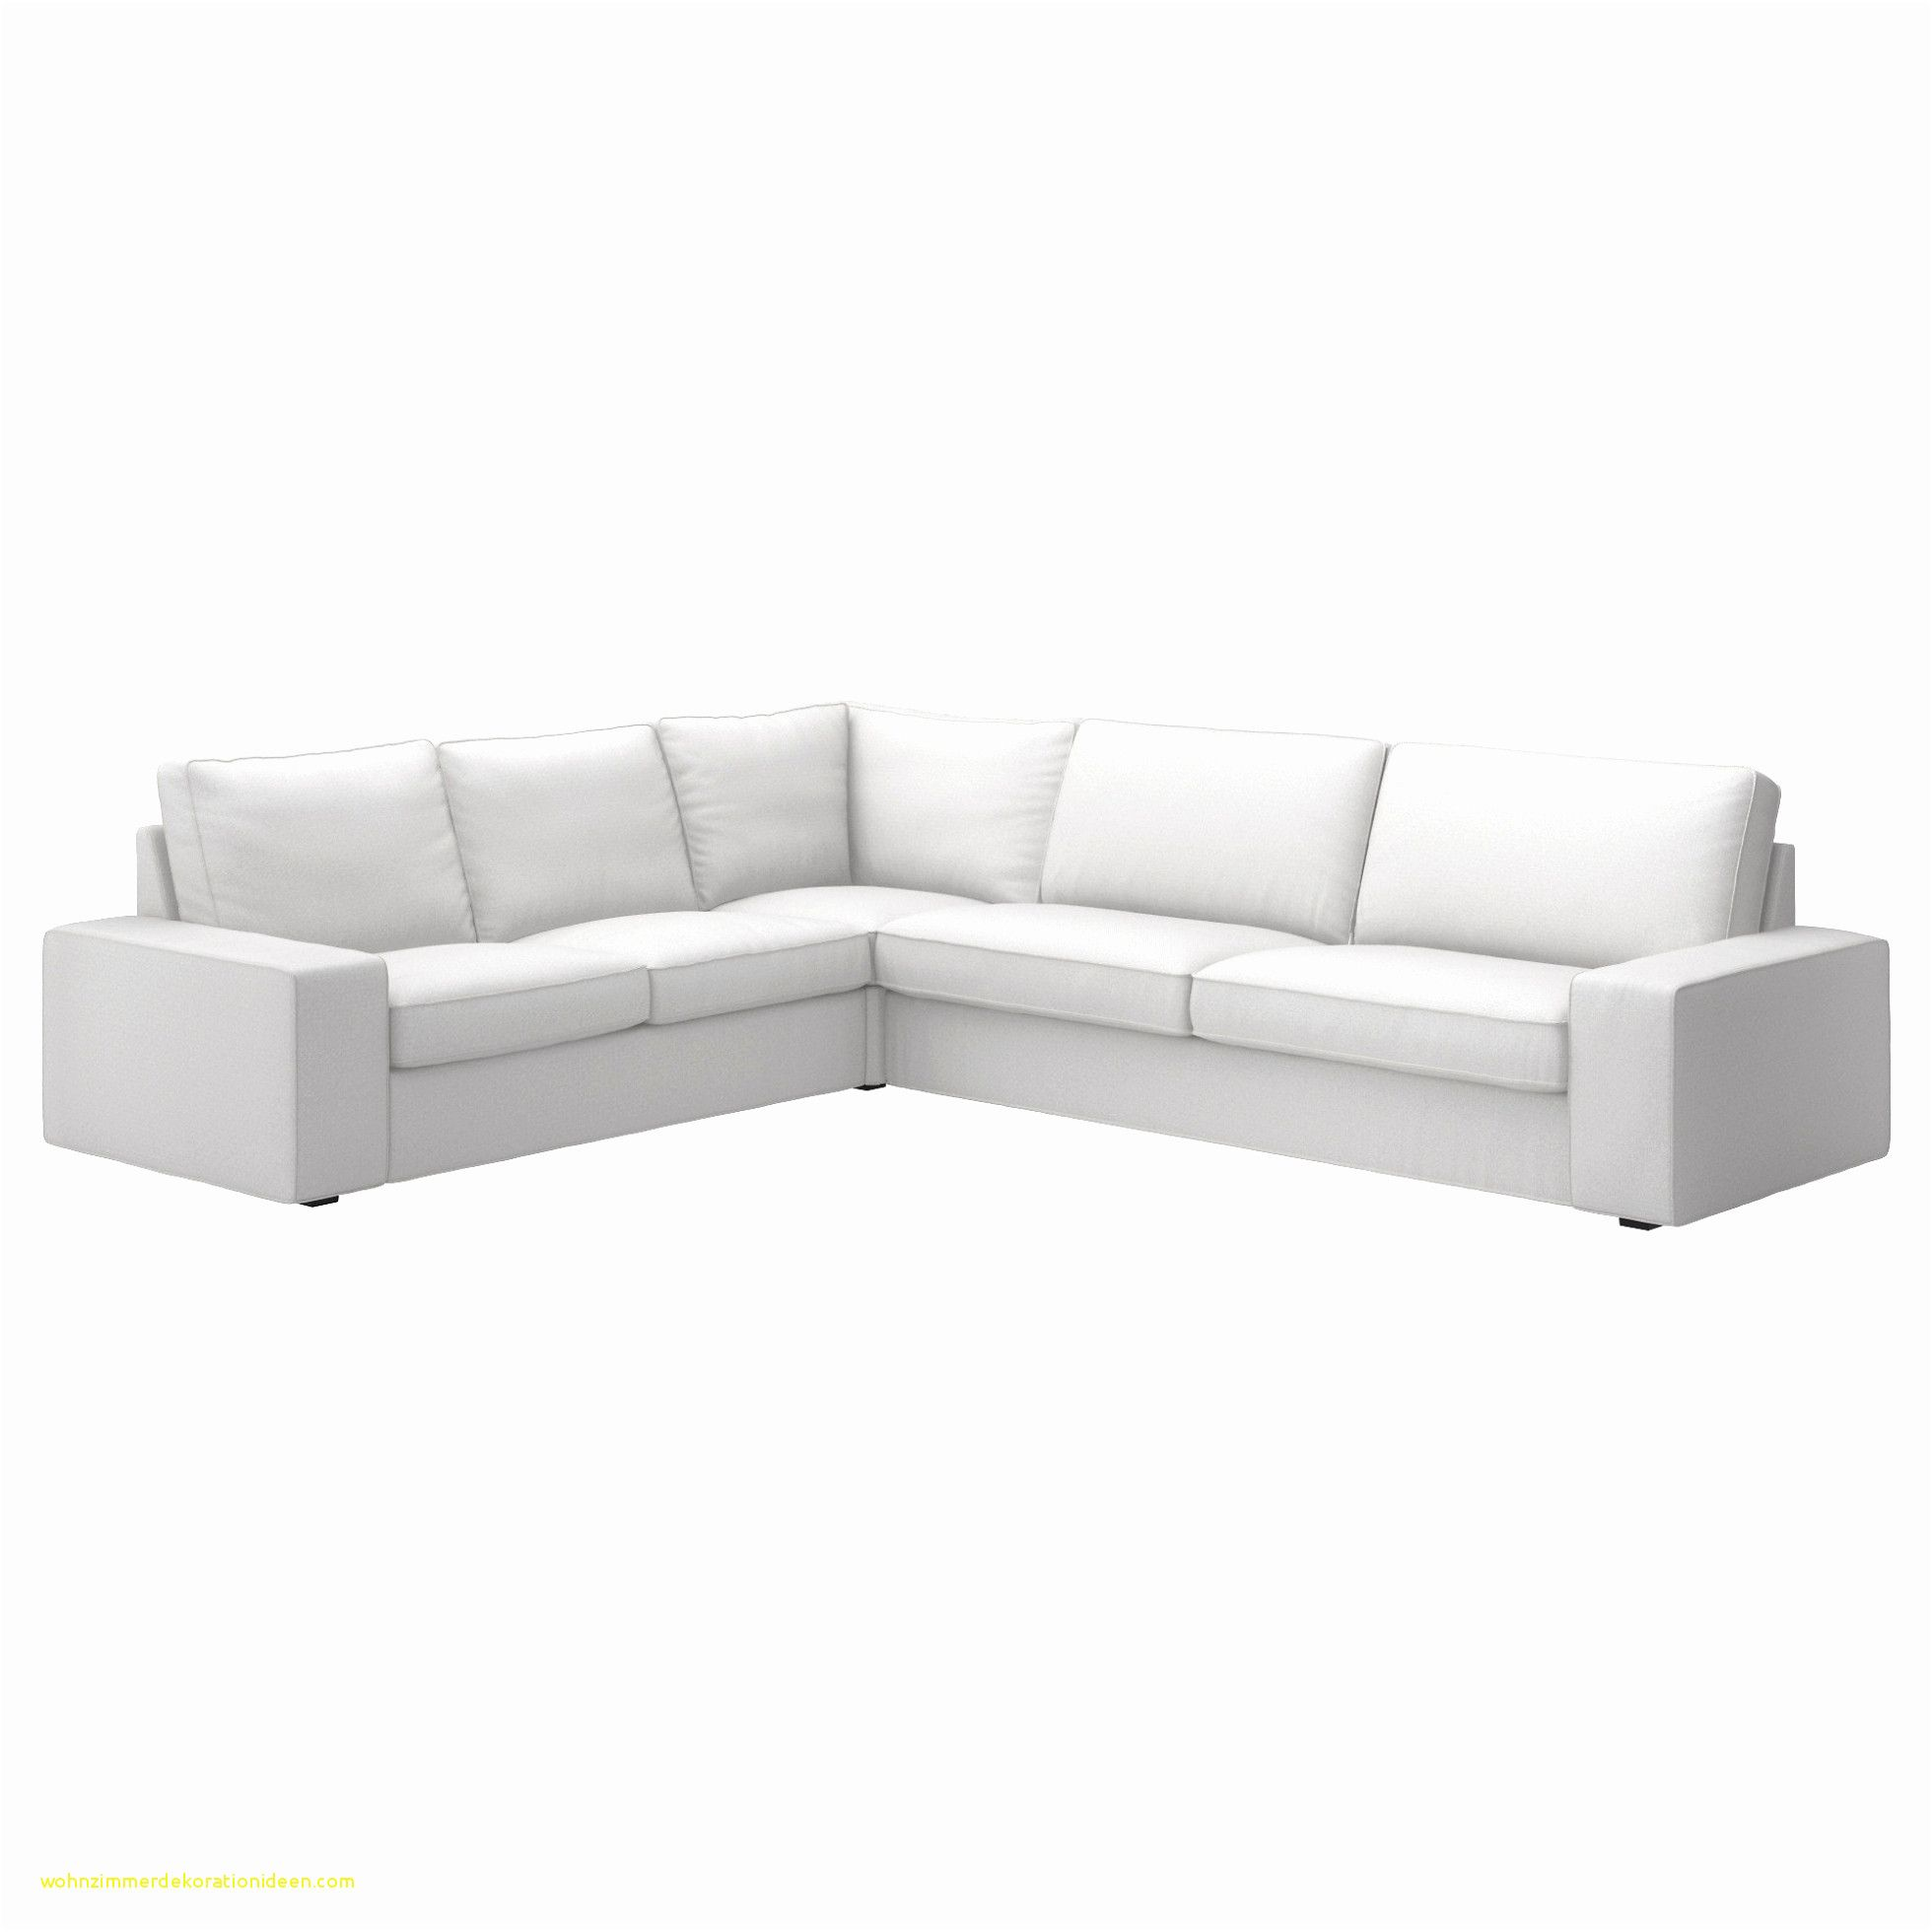 Klassisch Ecksofa Ikea White Sofa Set White Sofa Living White Furniture Living Room